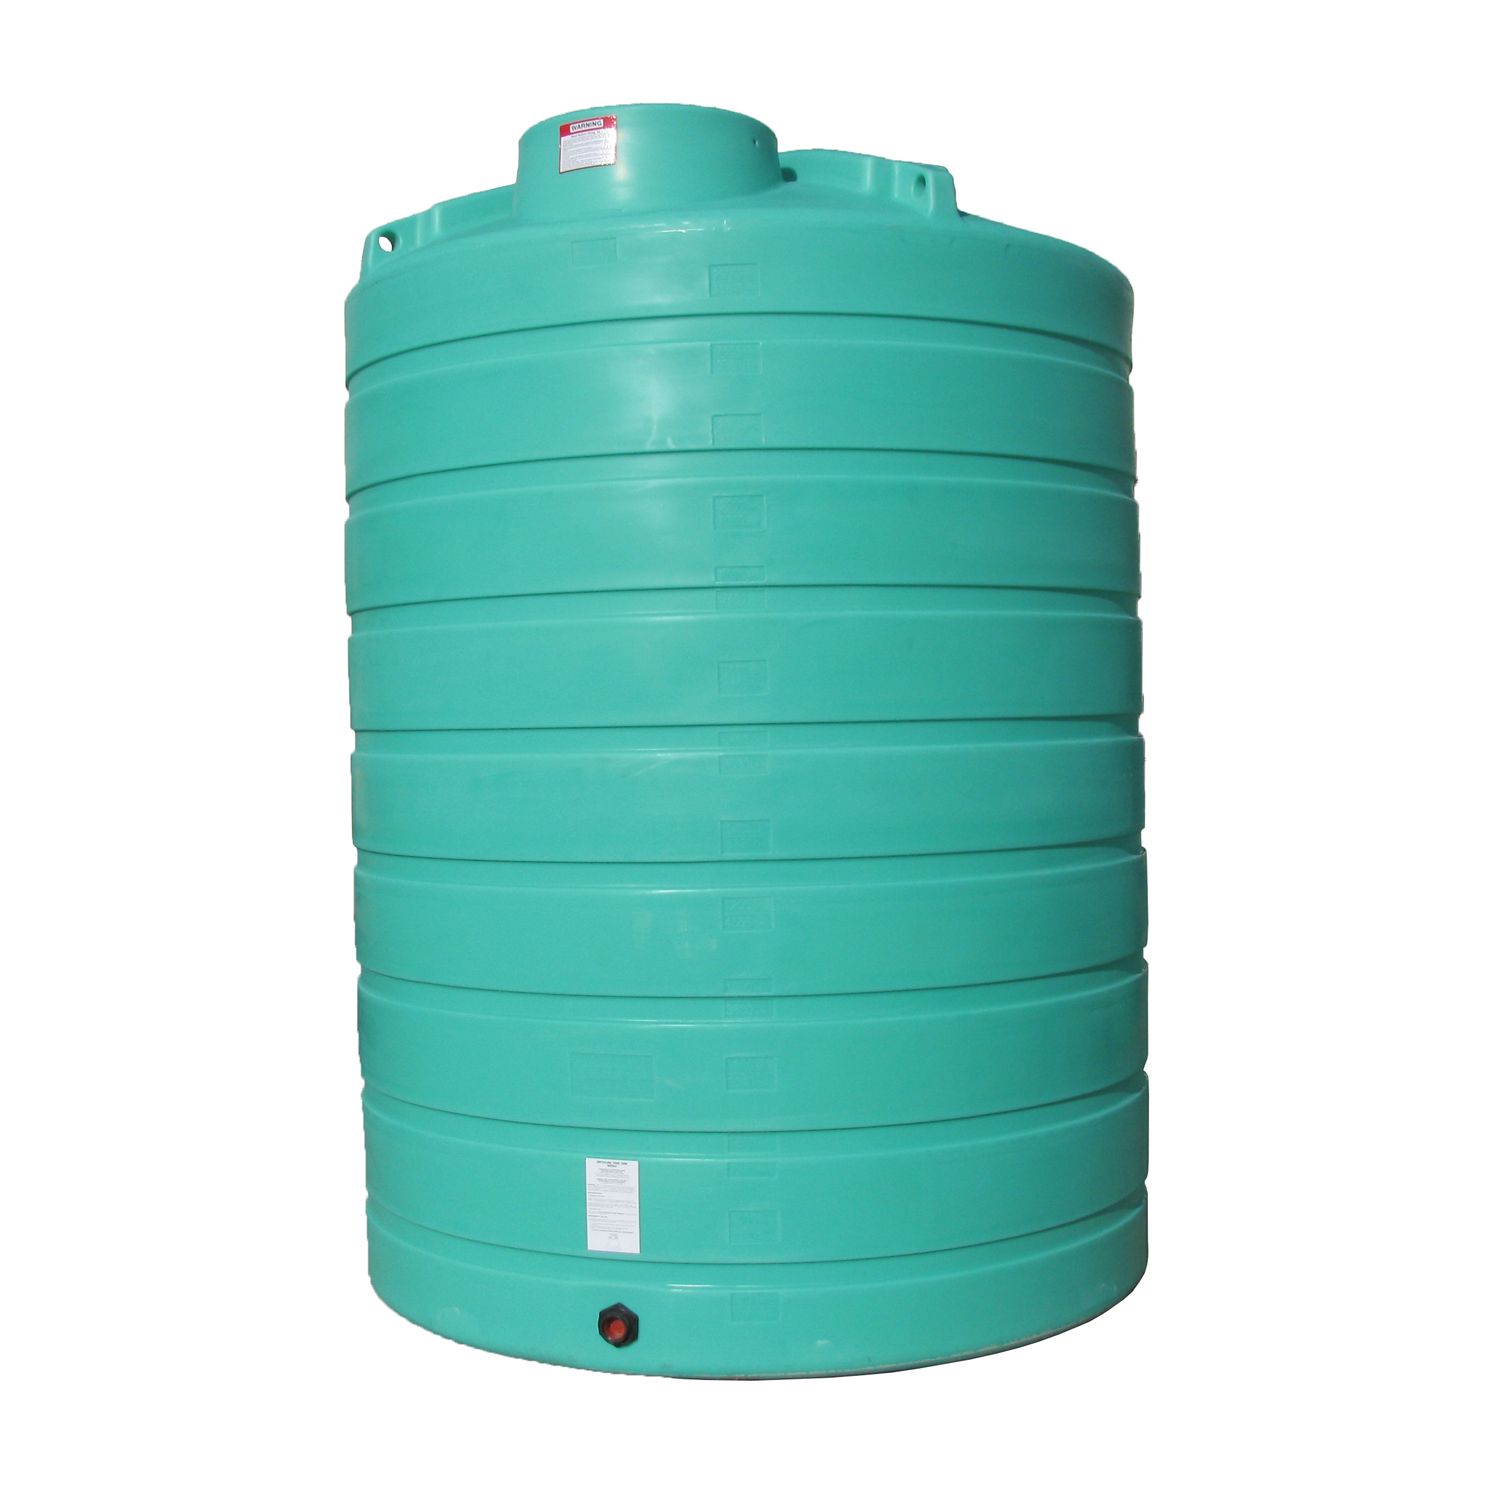 Enduraplas 3,000 Gallon Flat Bottom Storage Tank